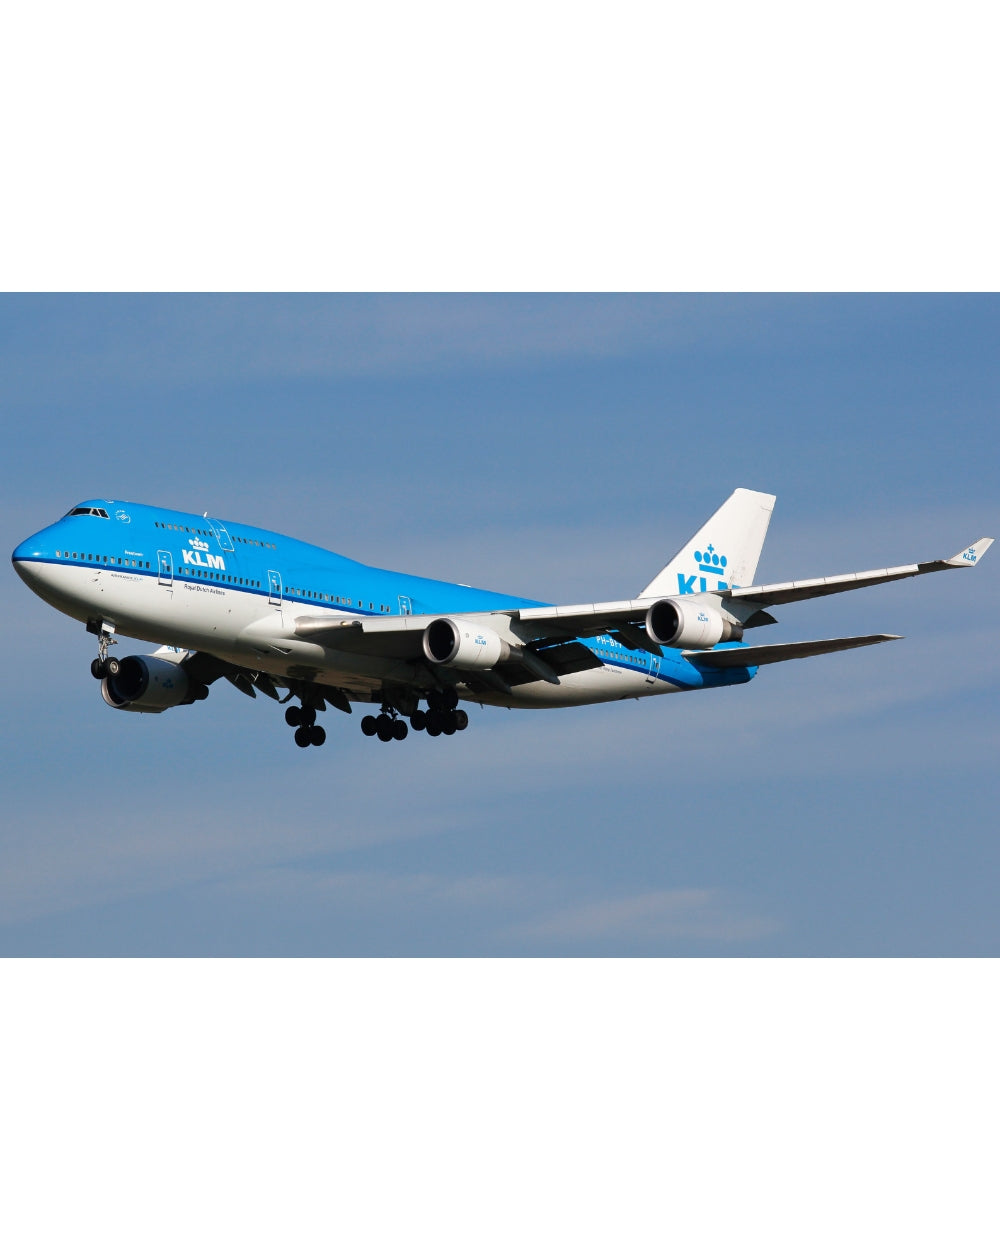 Boeing 747 - KLM - Série blanche